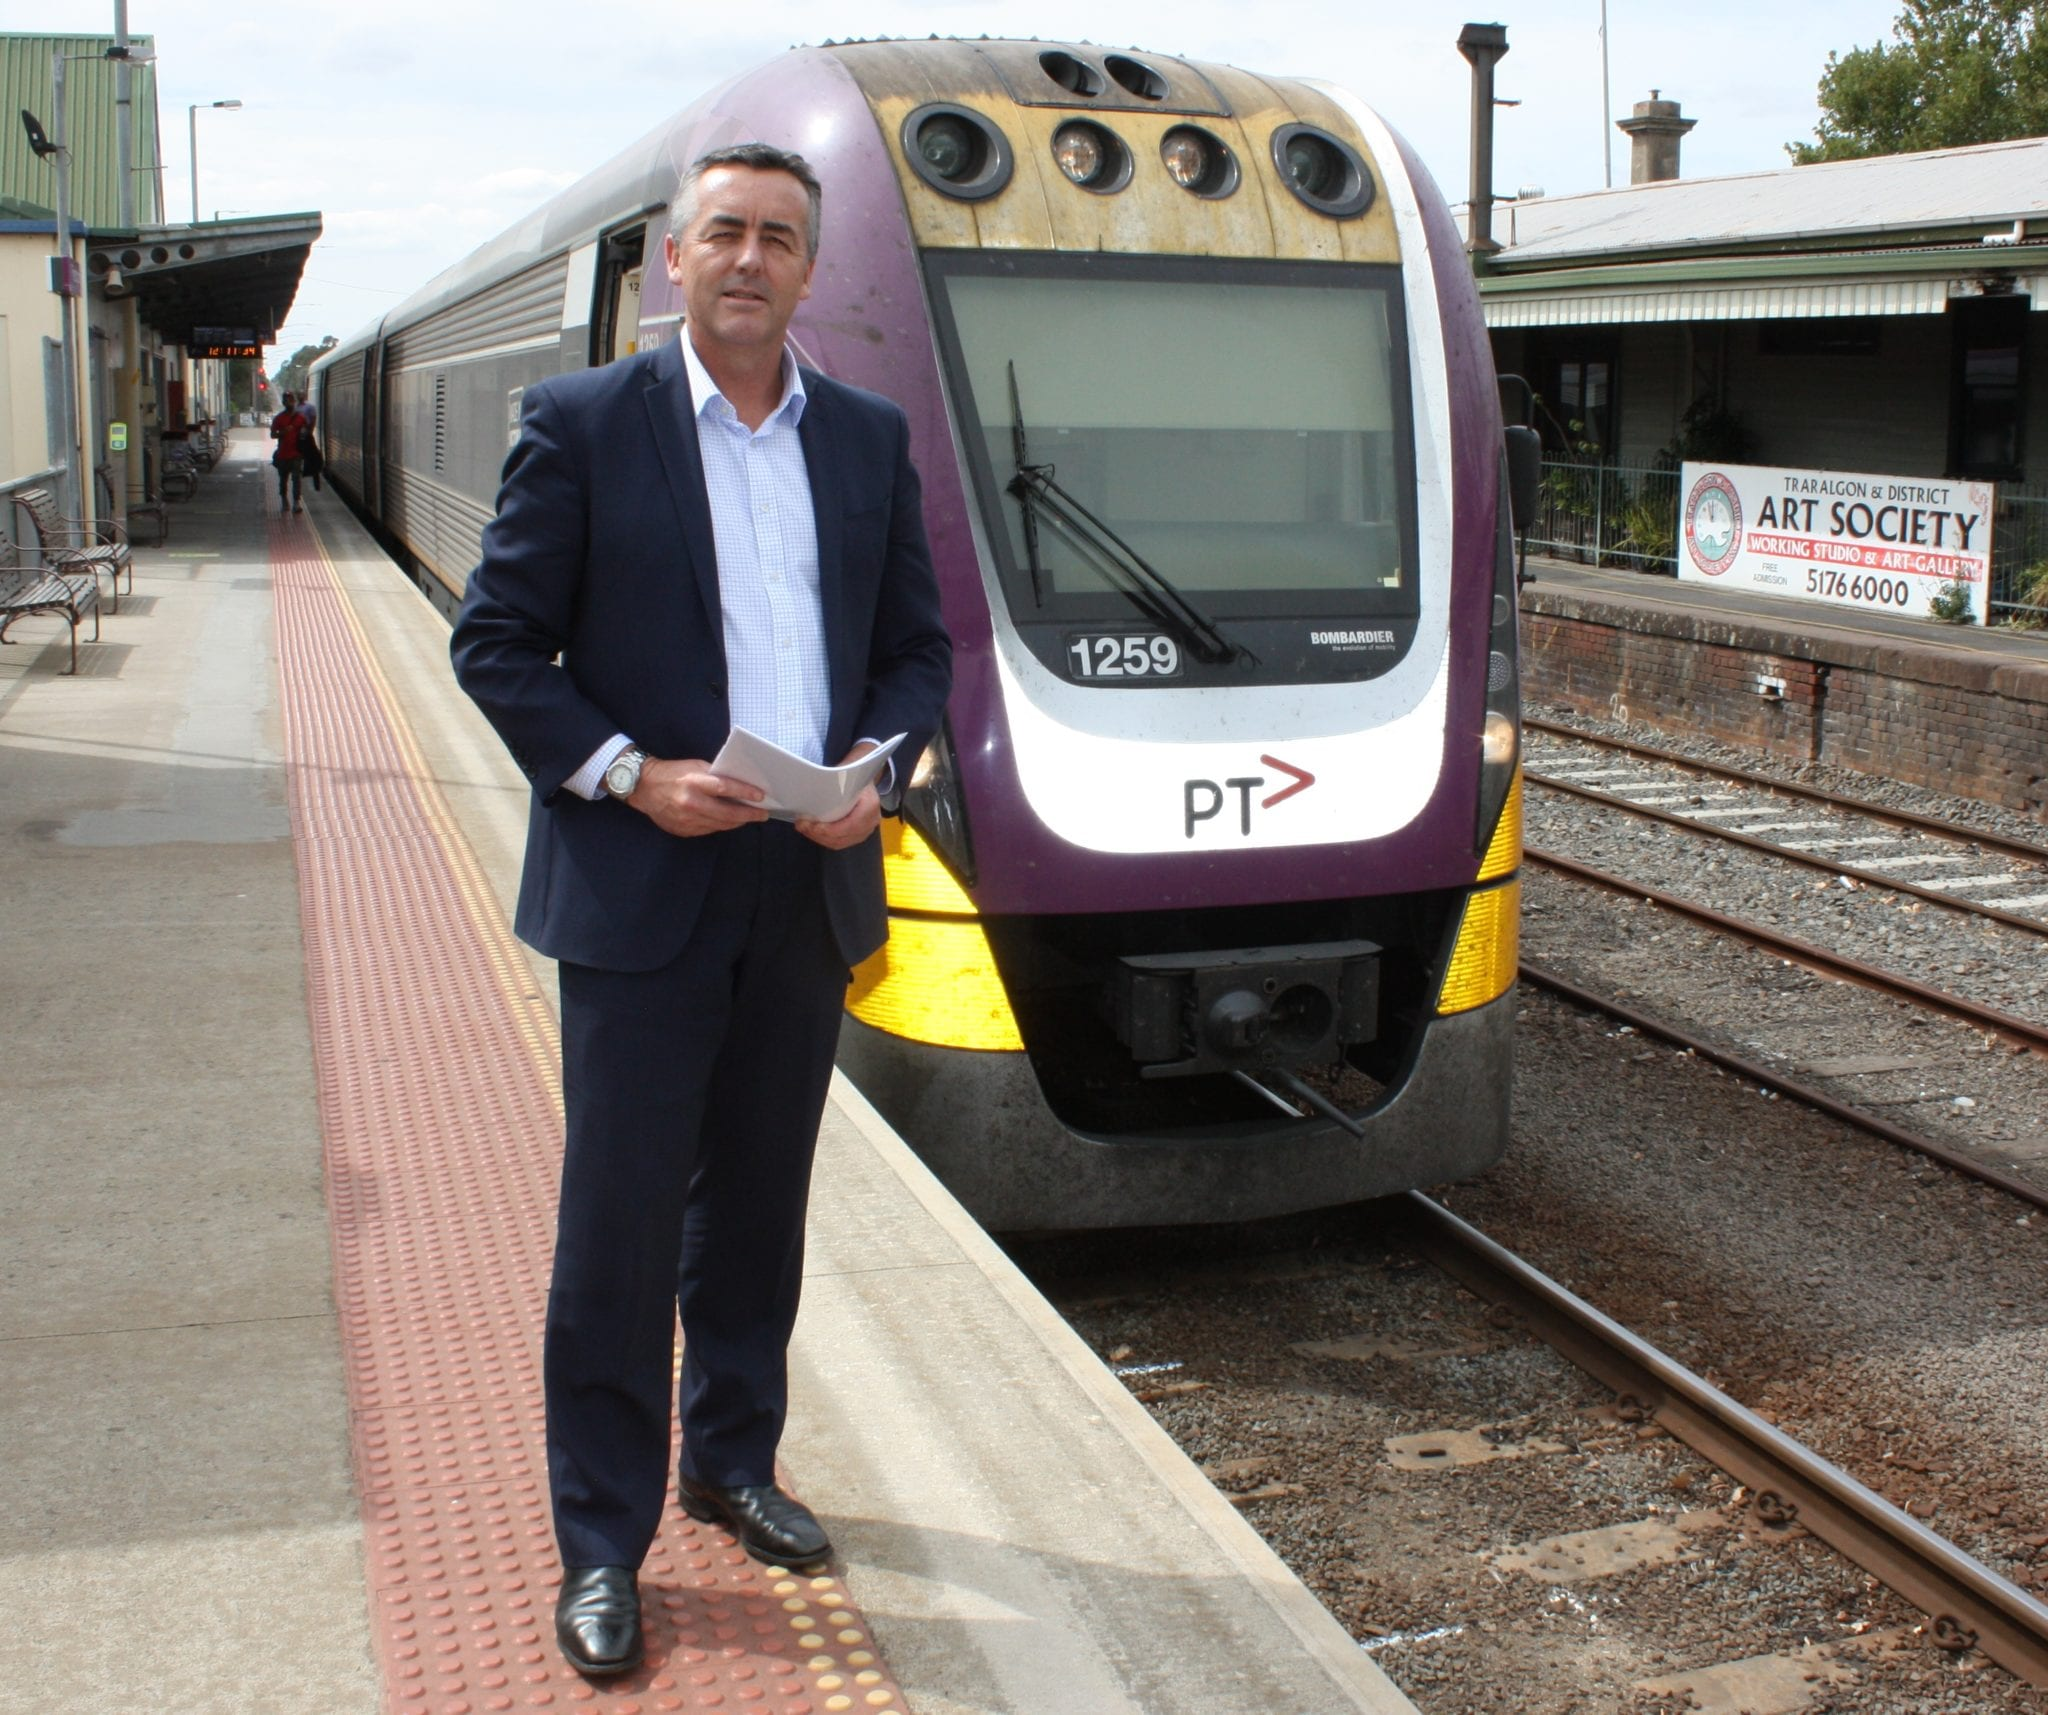 GROWING IMPATIENCE LEADS TO REQUEST TO GET RAIL WORKS UNDERWAY